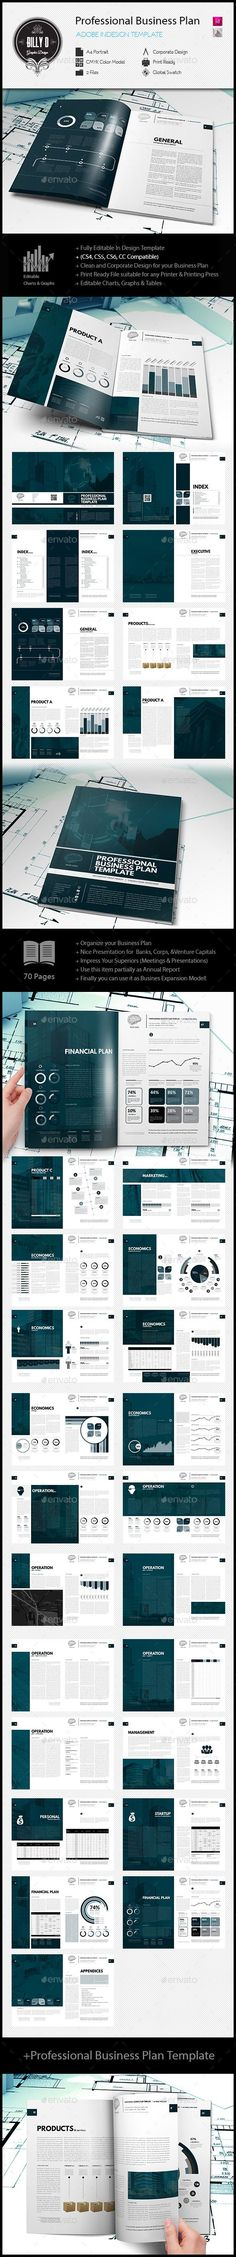 How to Write a Freelance Business Plan--Plus a Business Plan - software business plan template